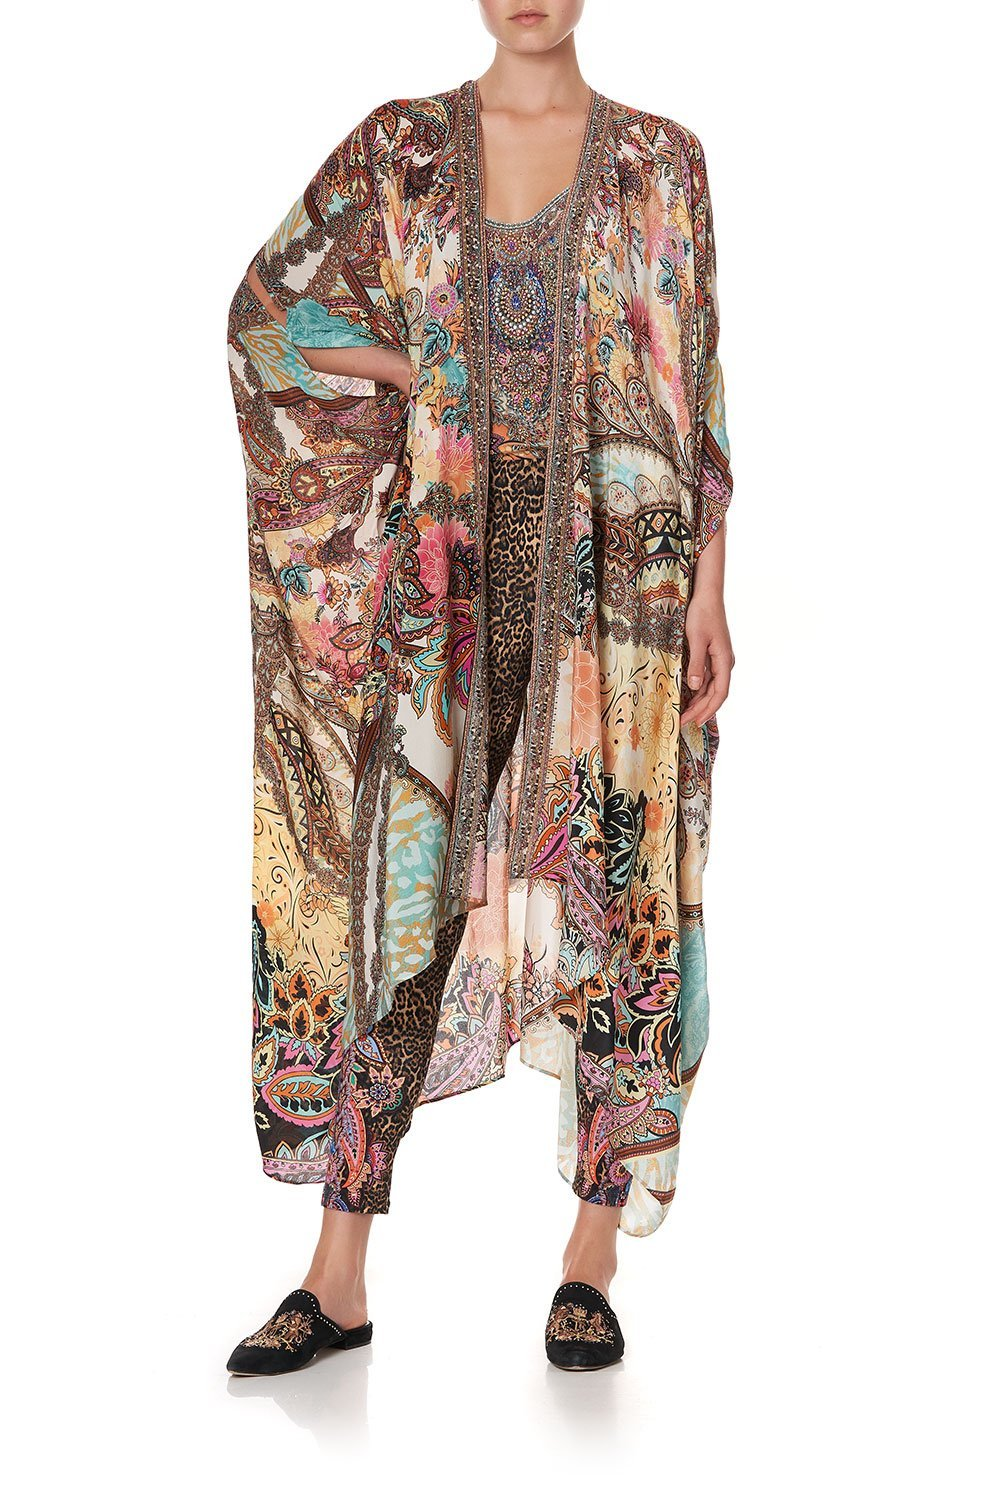 MULTIWEAR DRAPED LAYER CARNABY DISCO